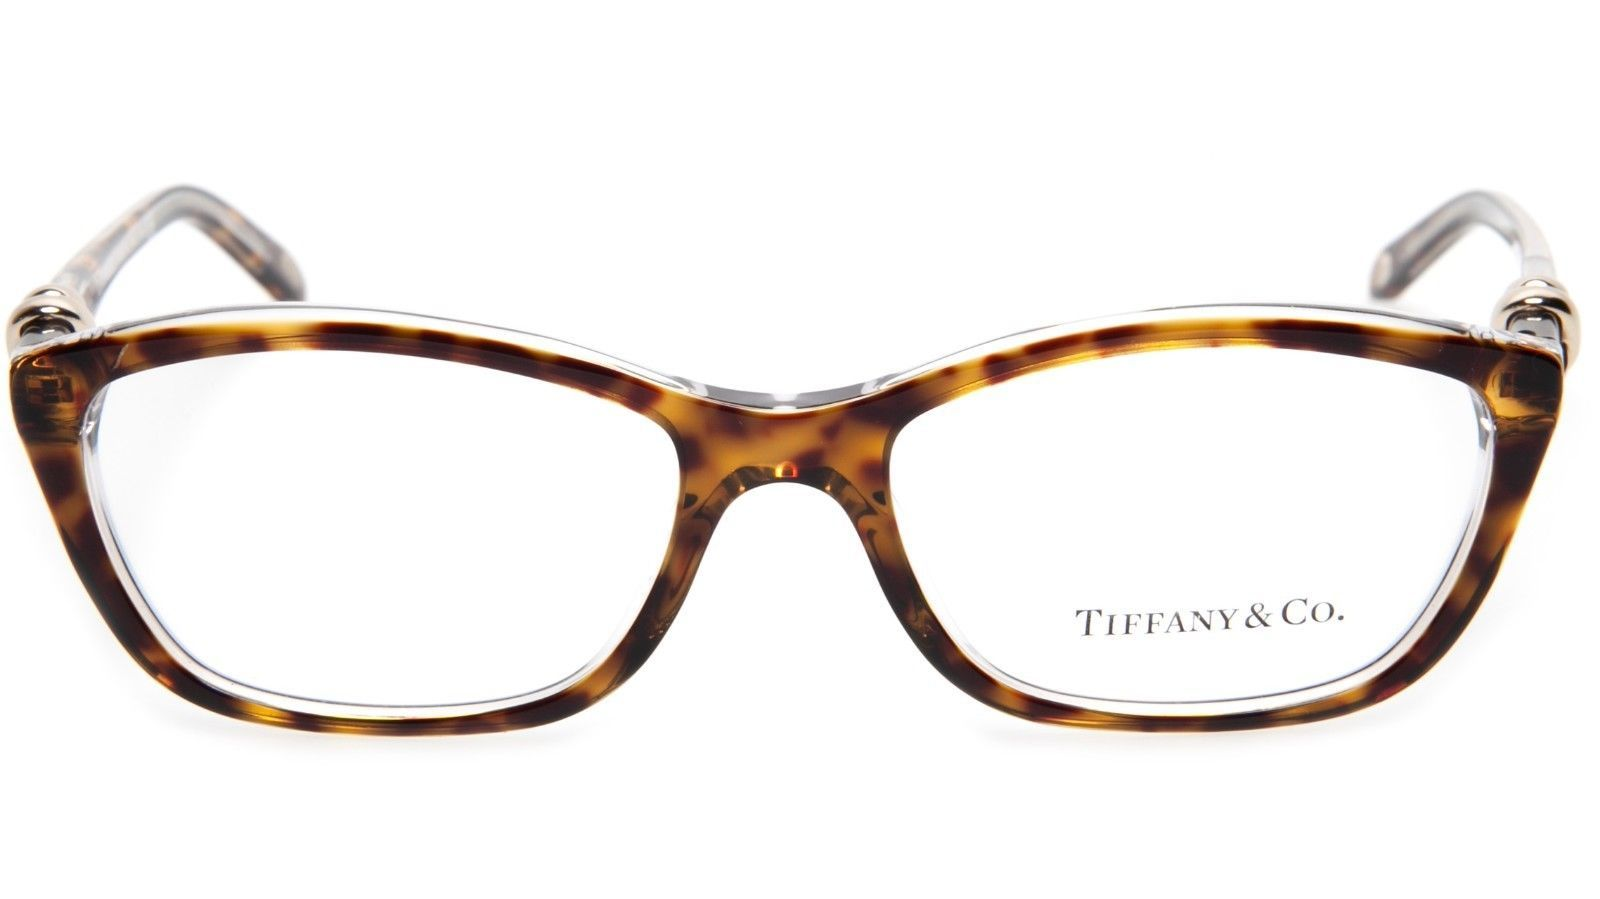 1b52749abce5 NEW TIFFANY   Co. TF 2074 8155 HAVANA TRANSPARENT EYEGLASSES 52-16-135